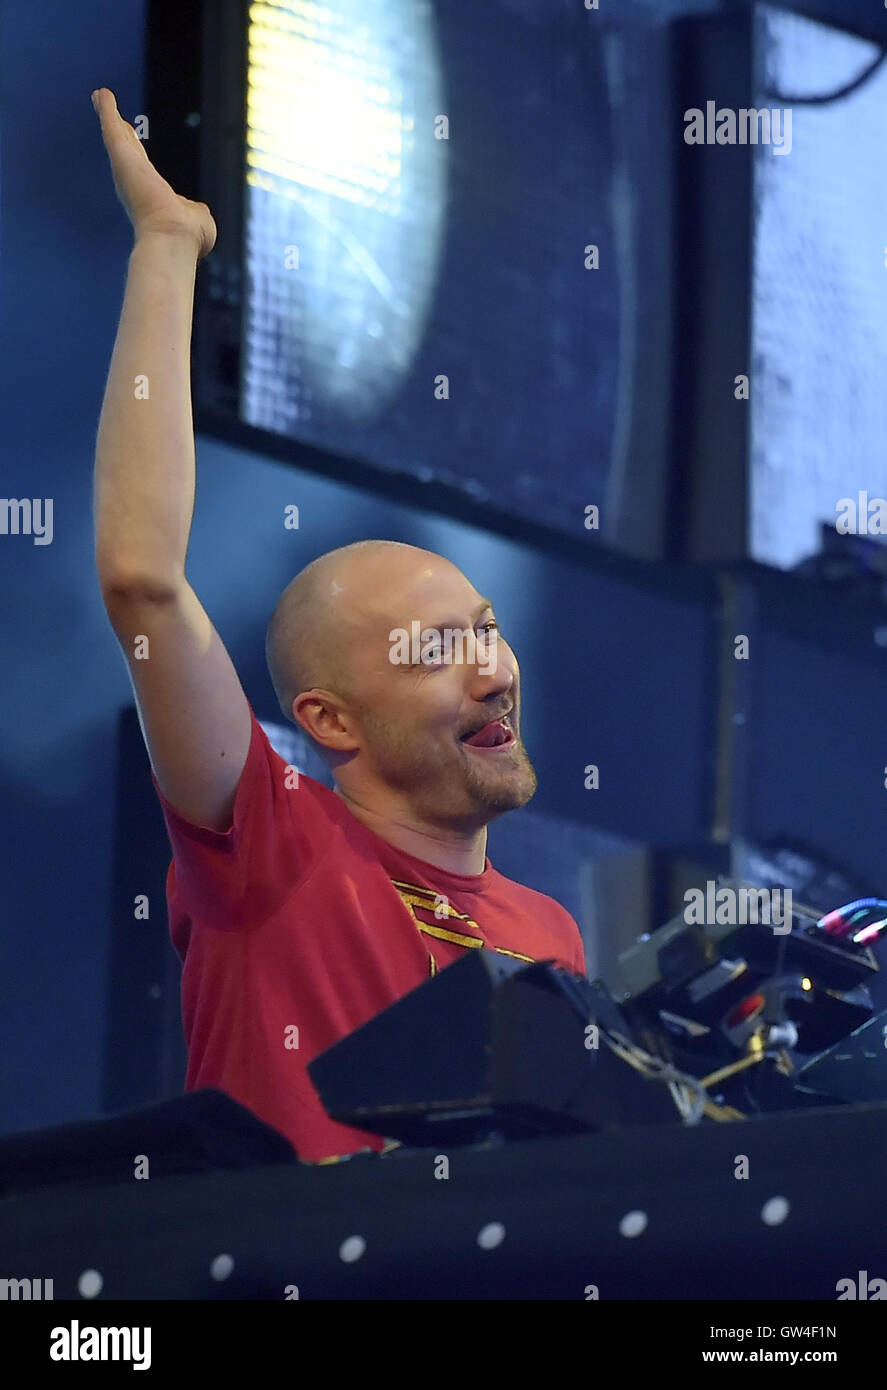 Berlin, Germany. 10th Sep, 2016. Paul Kalkbrenner performing at the music festival Lollapalooza in Berlin, Germany, - Stock Image